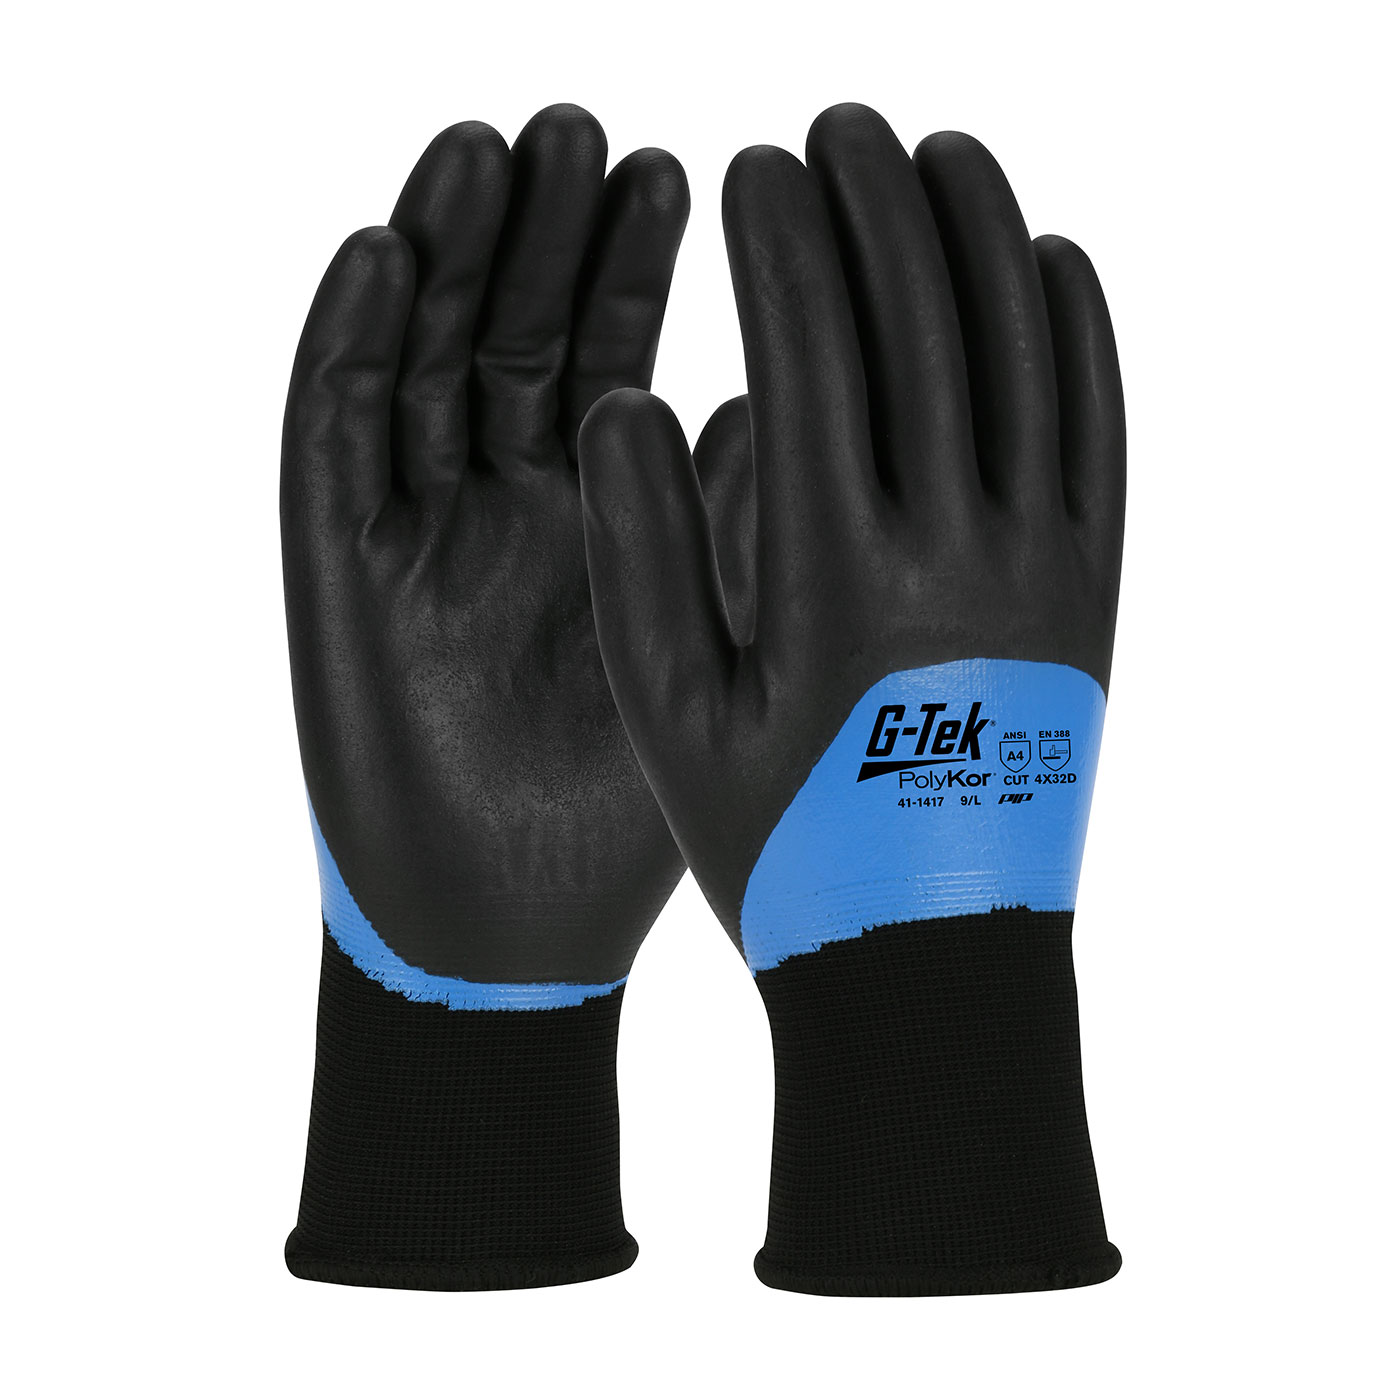 #41-1417 PIP® G-Tek® Seamless Knit PolyKor Glove with Acrylic Liner and Double Dipped Nitrile Coated Foam Grip on Full Hand